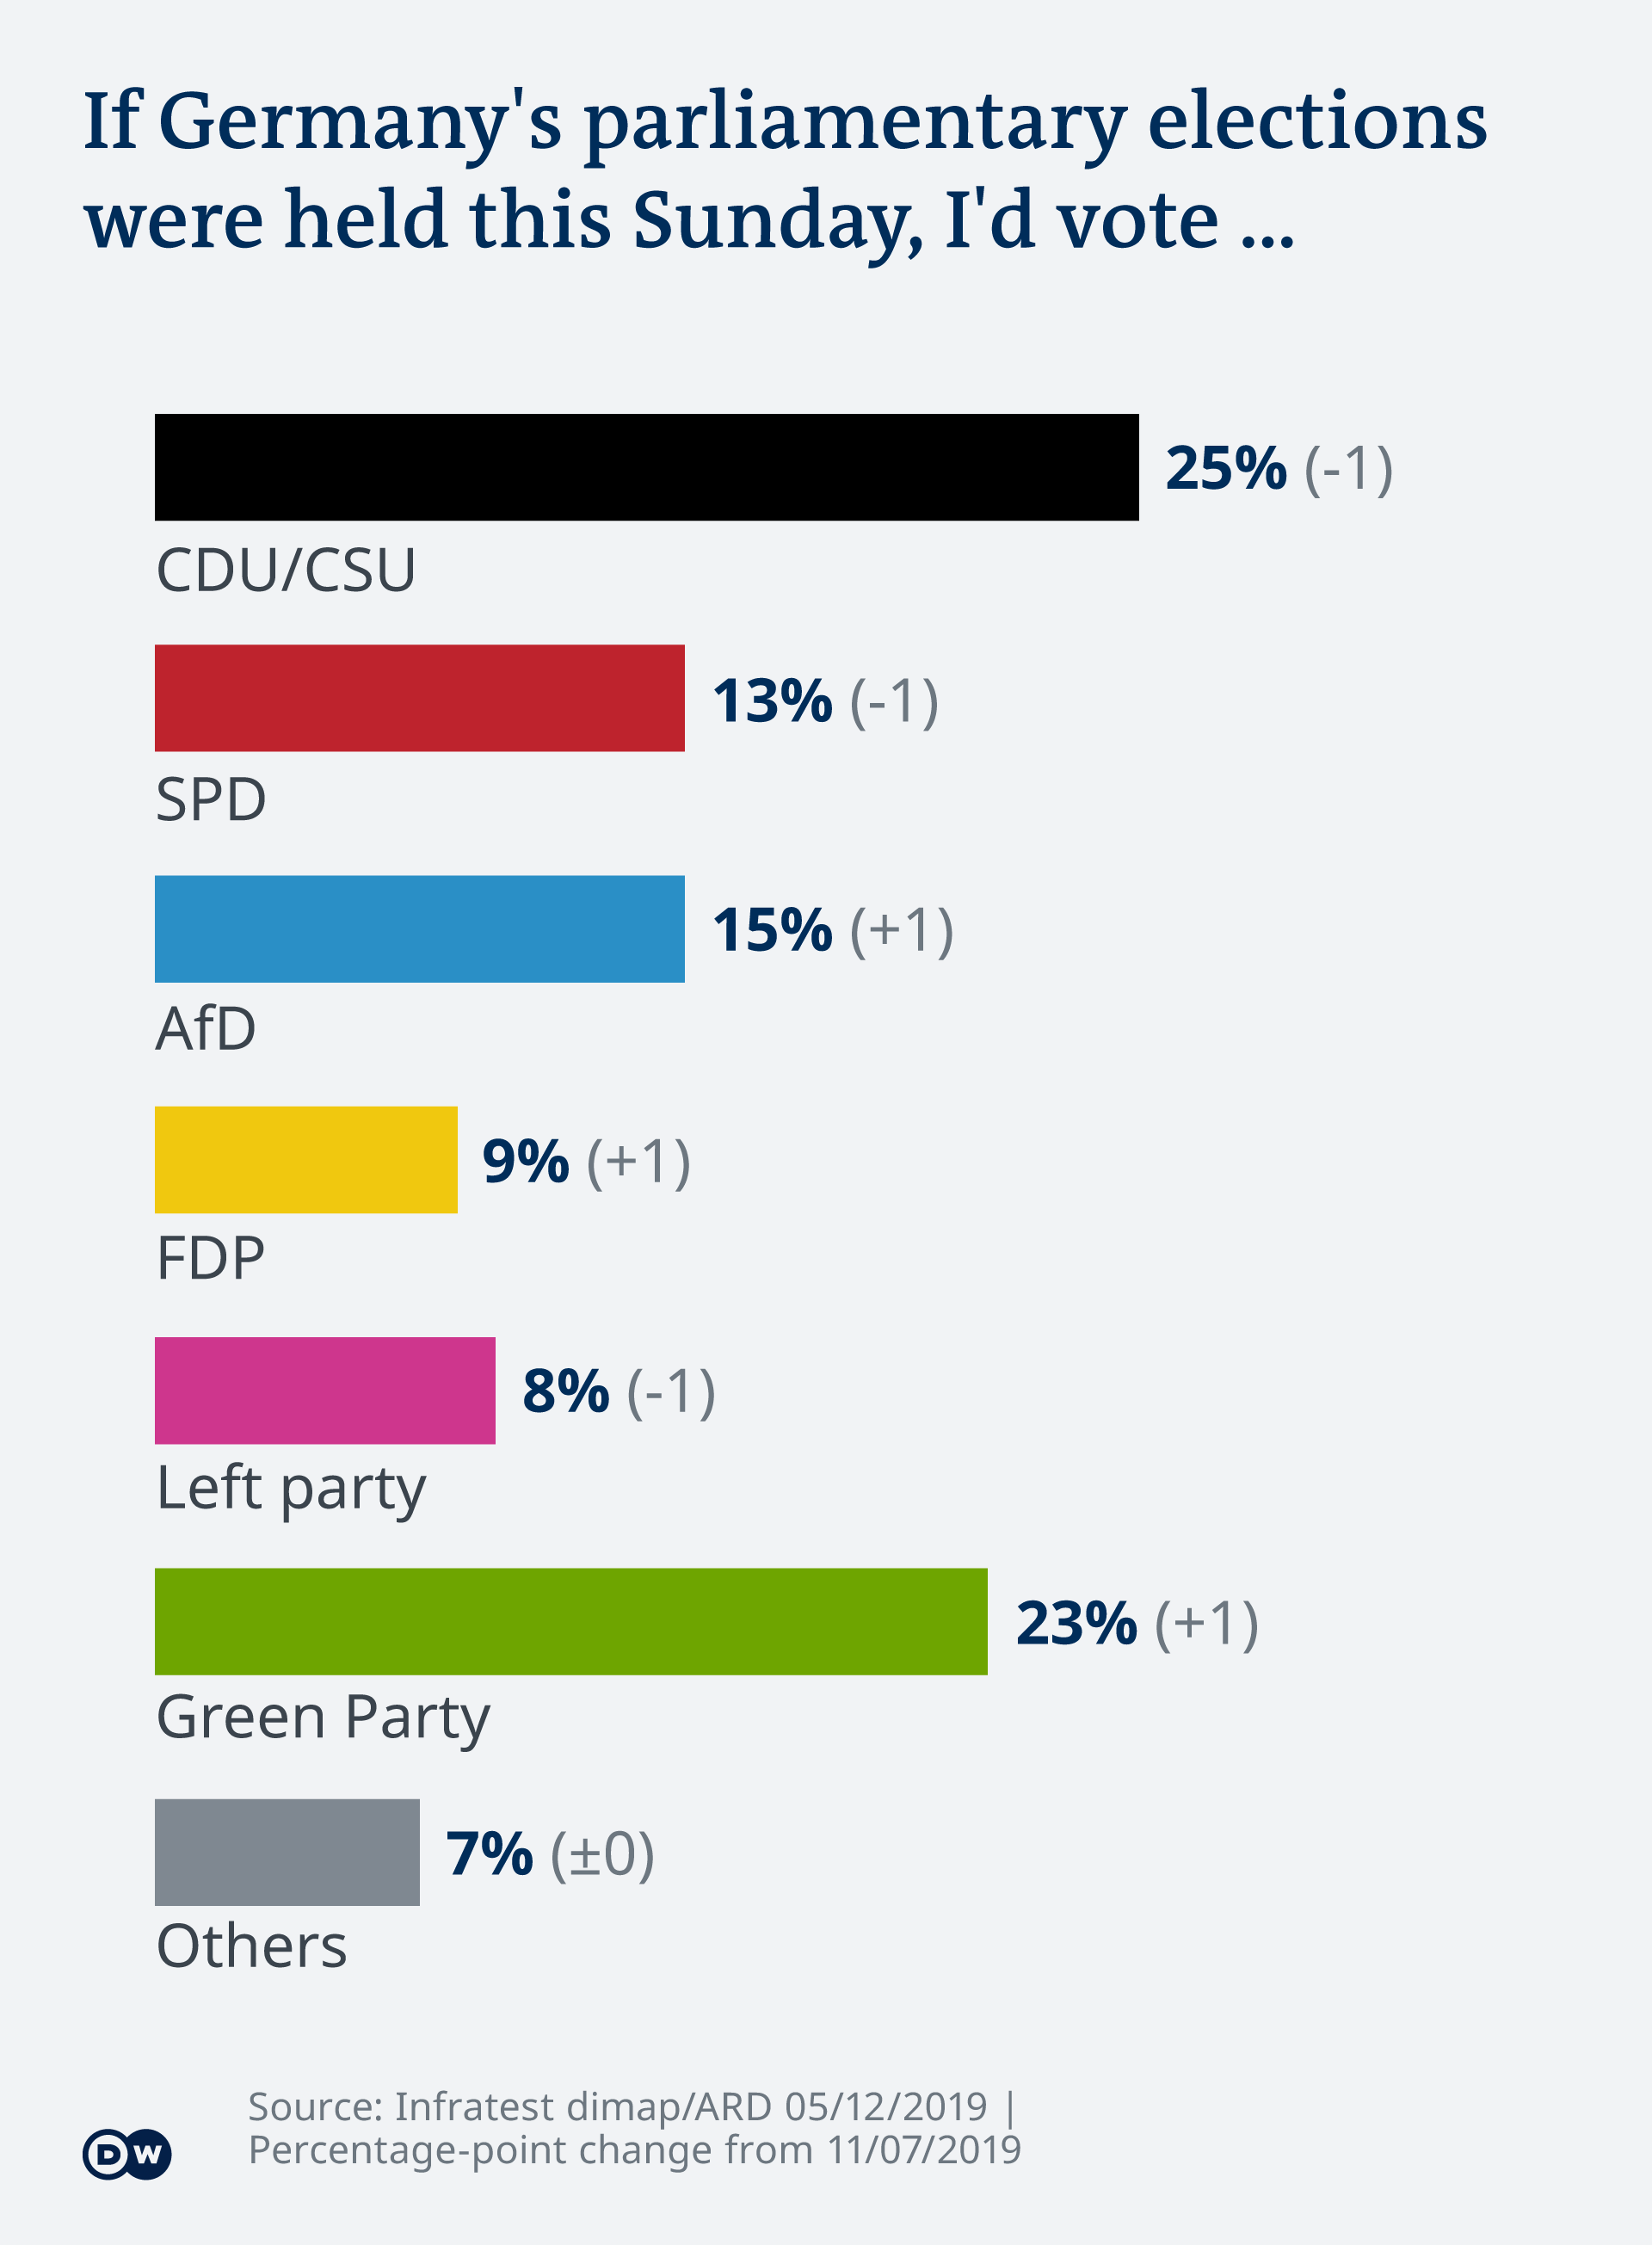 Infographic showing the support for each party